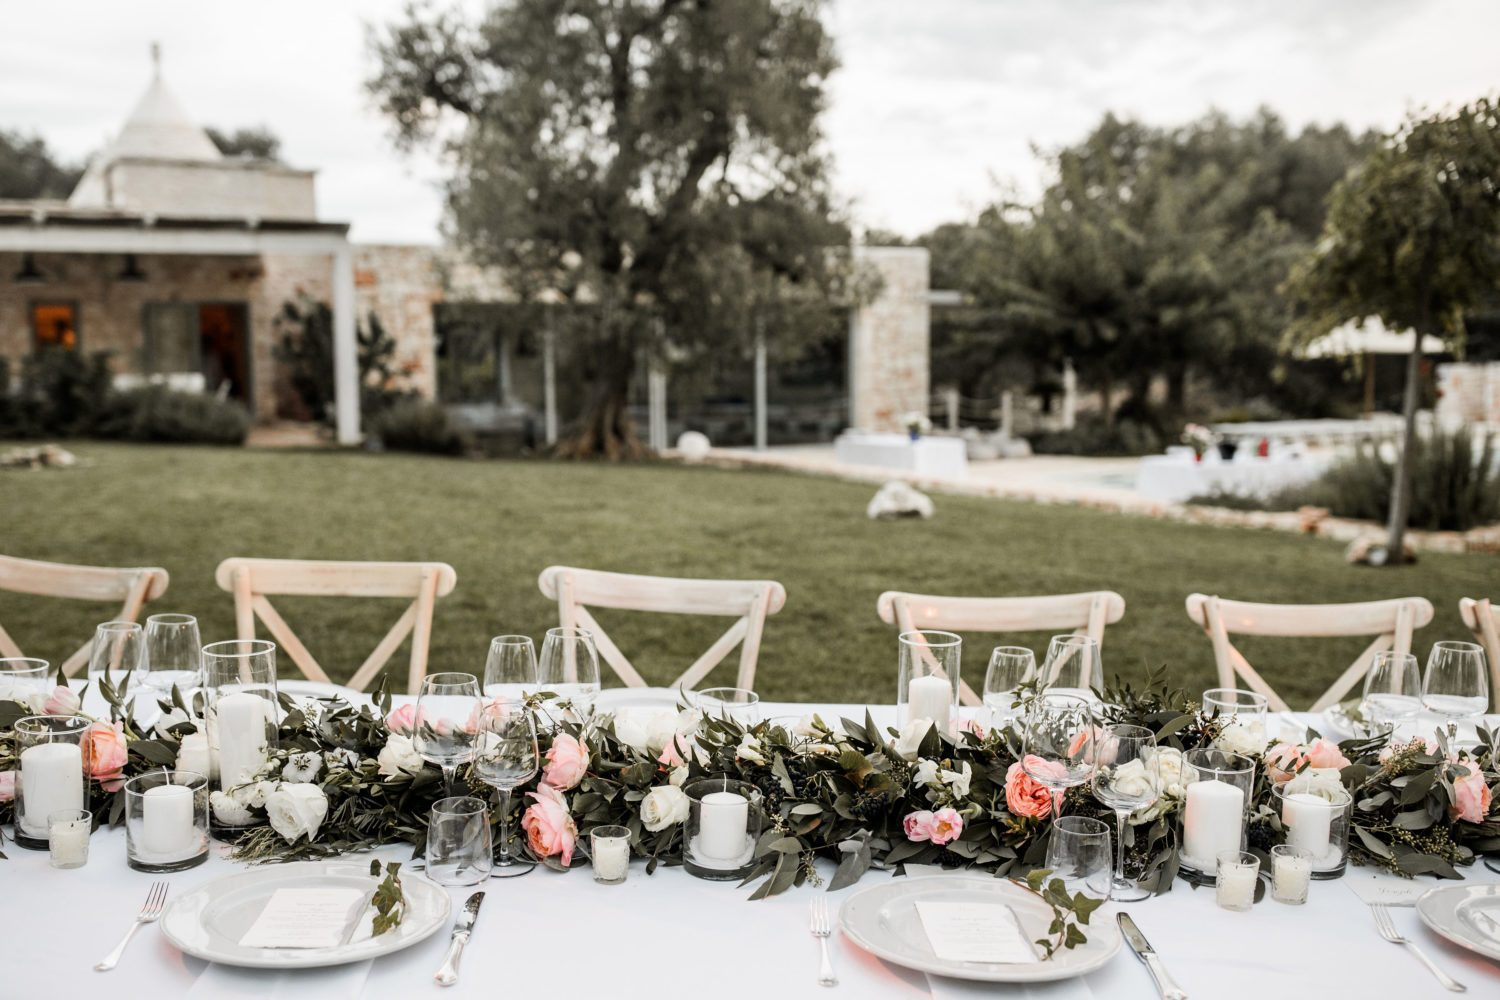 Best-Italian-wedding-planner-for-destination-weddings-Puglia